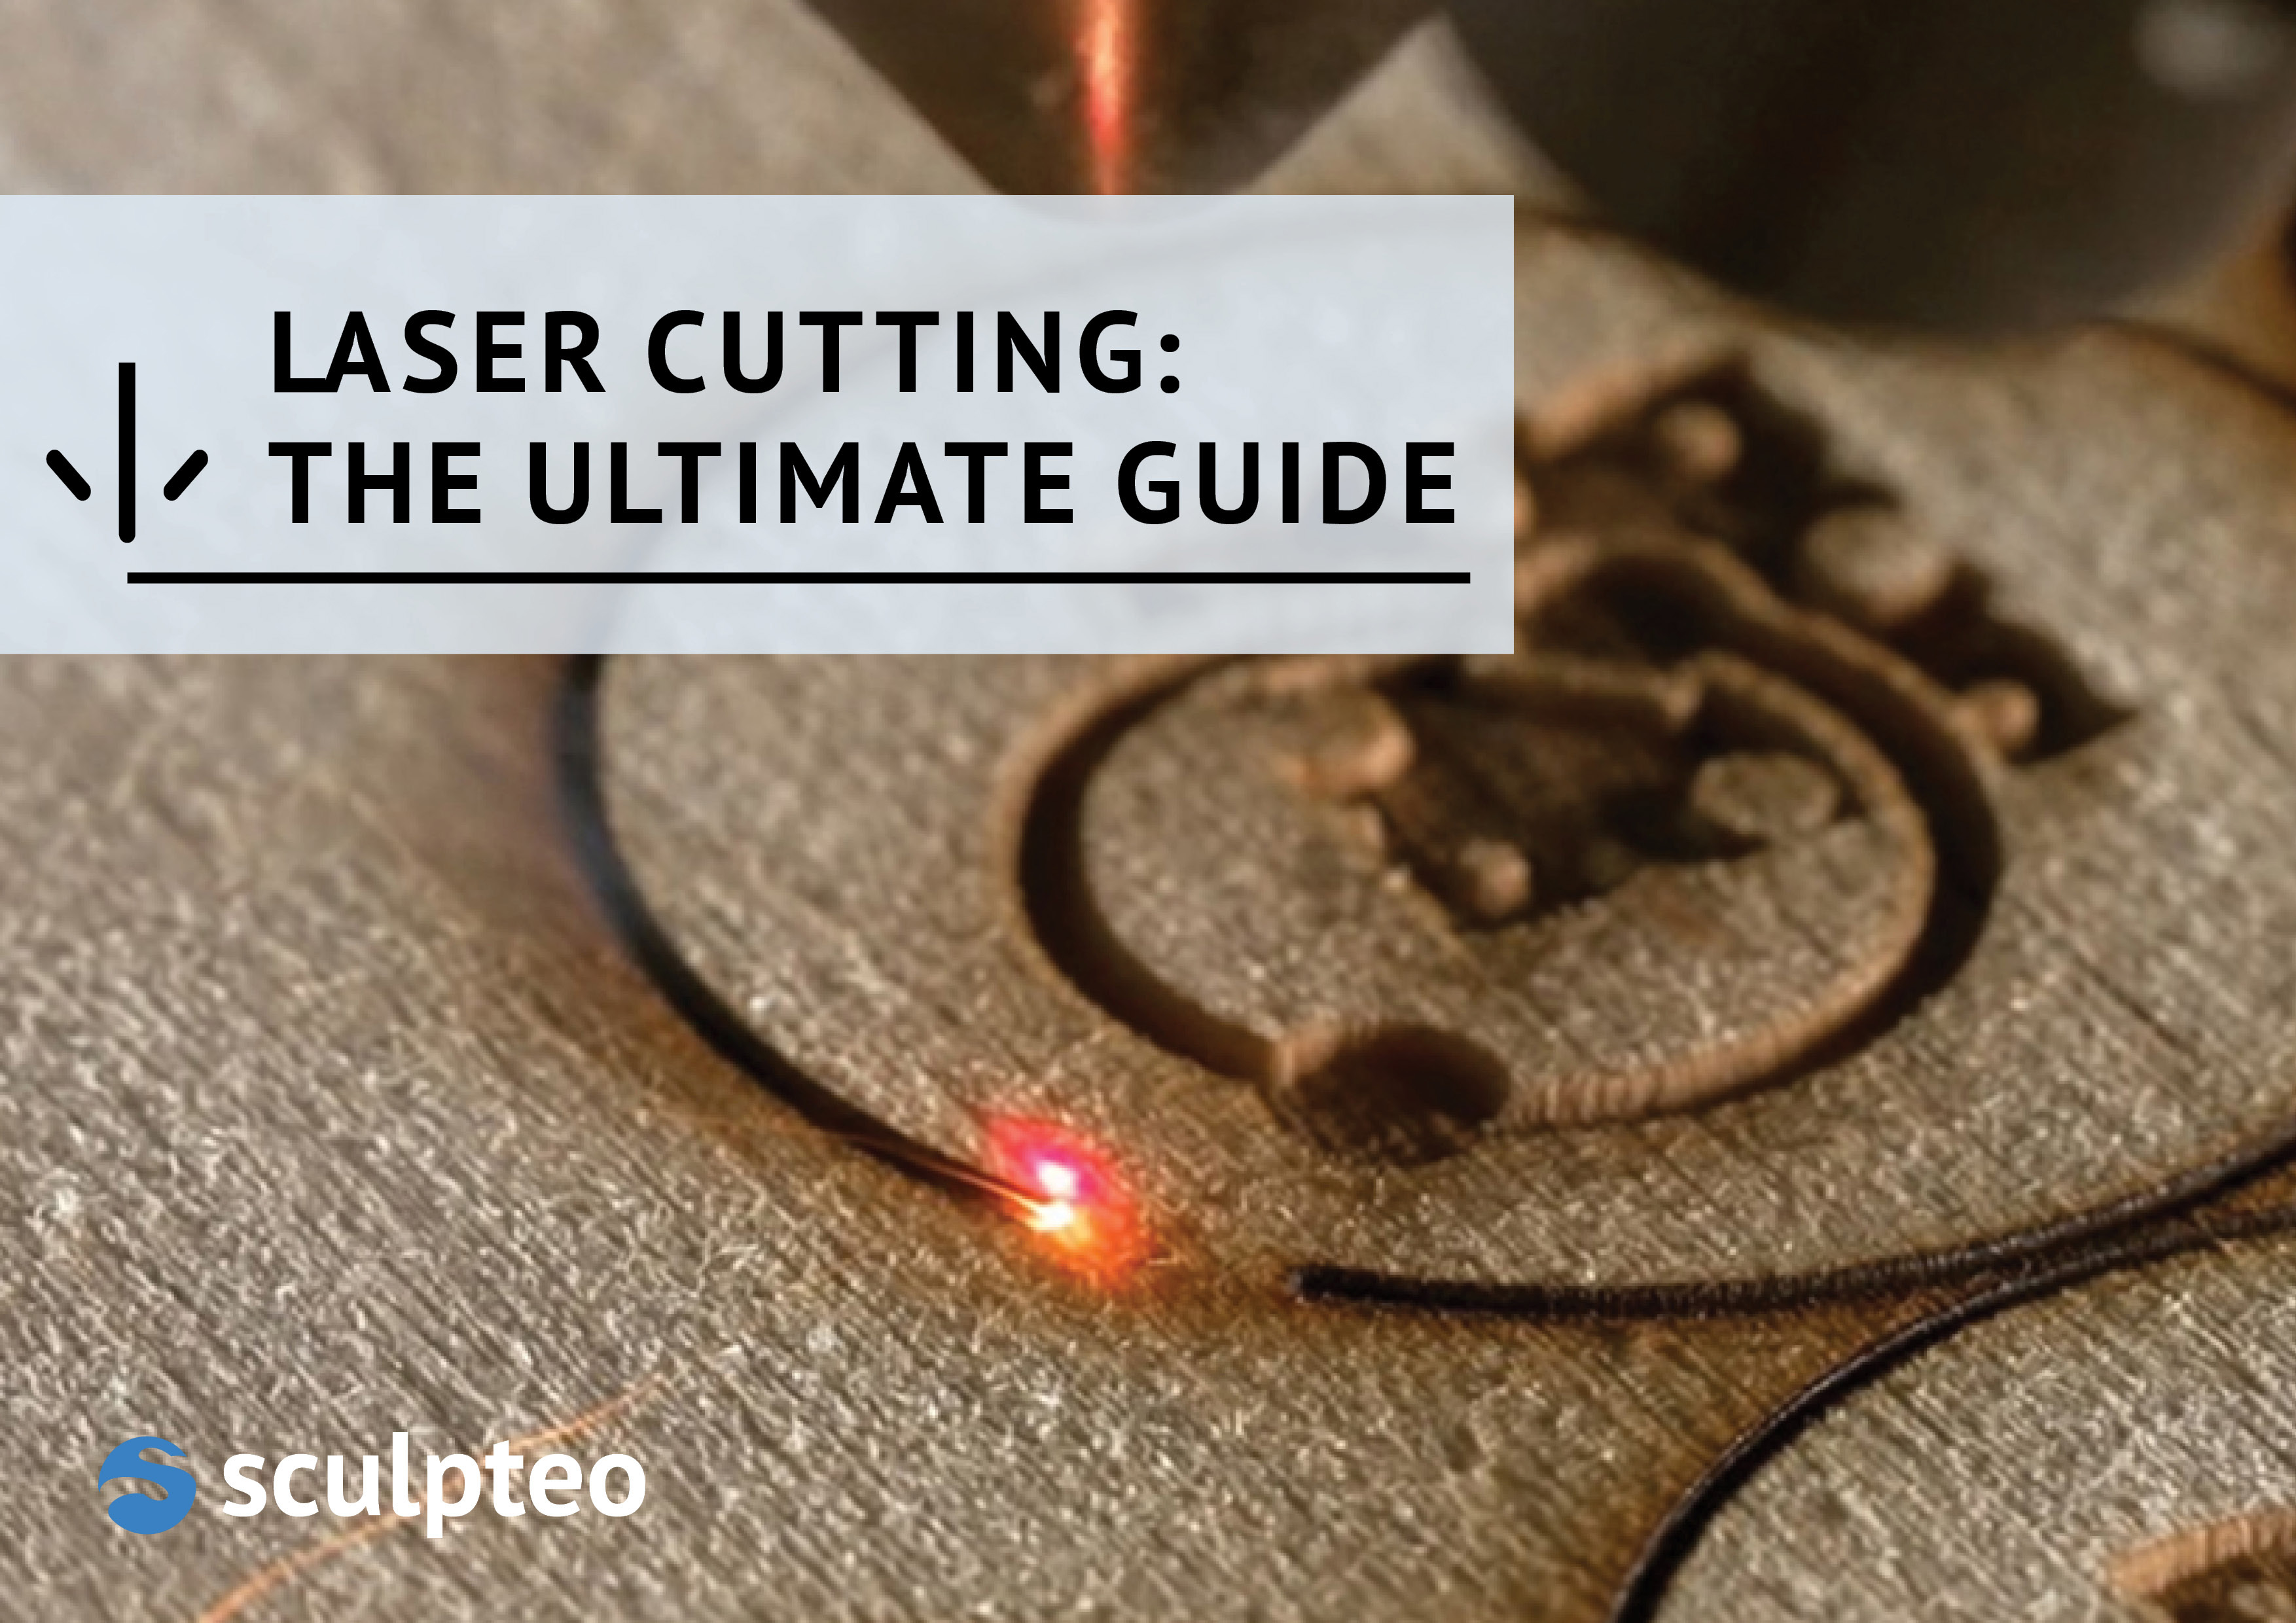 The ultimate guide of laser cutting